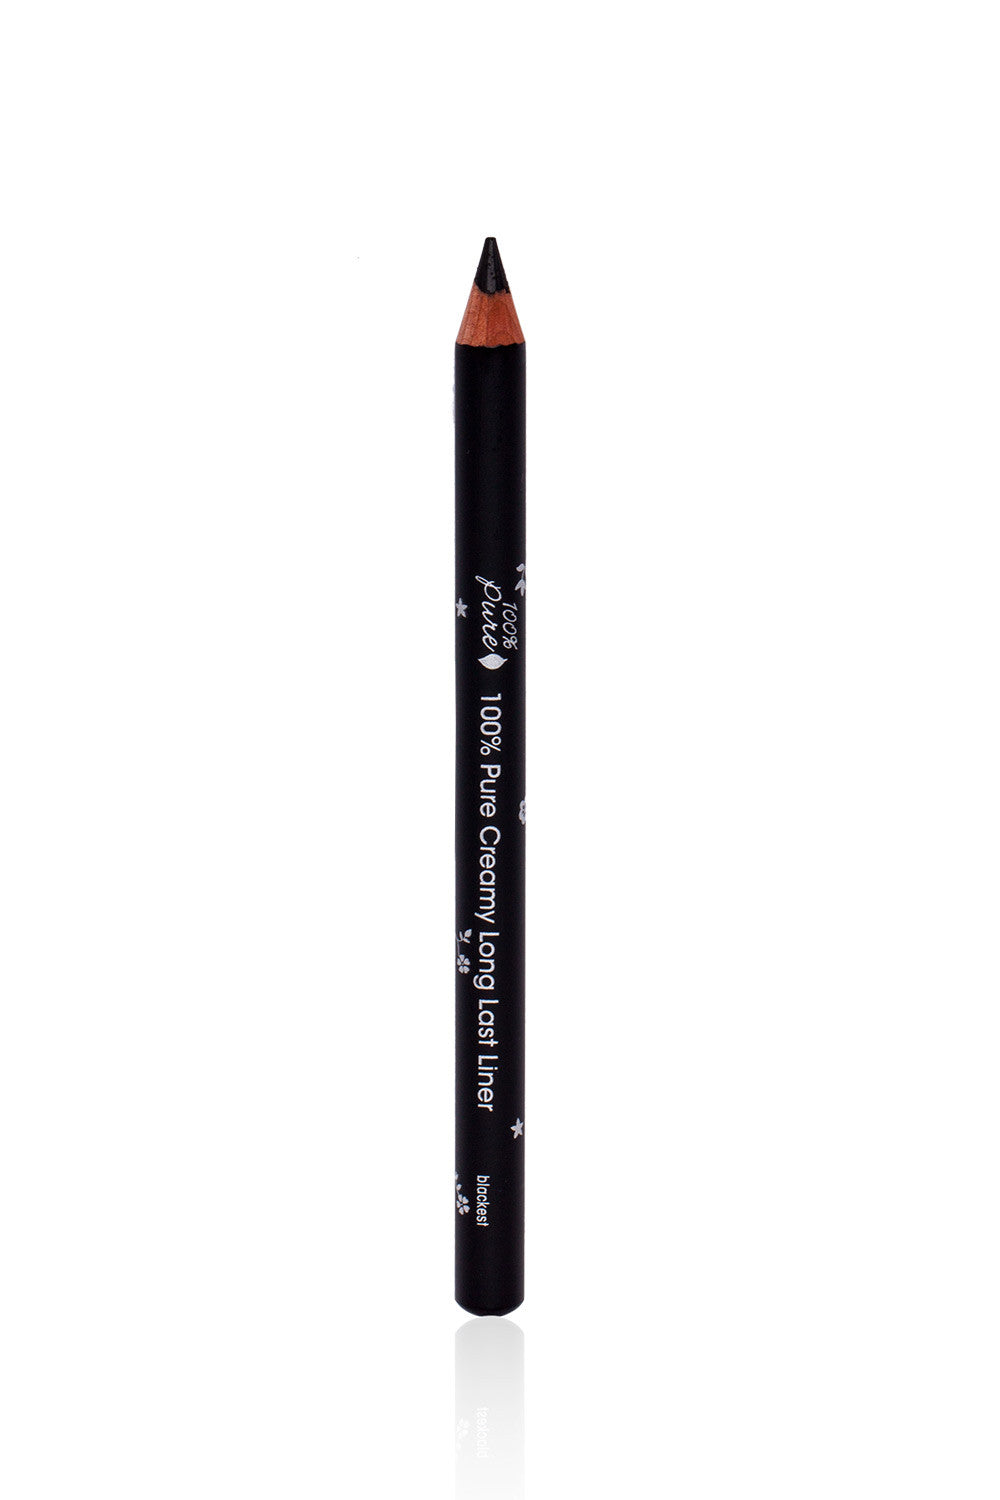 100% Pure Fruit Pigmented Black Long Last Pencil Eyeliner